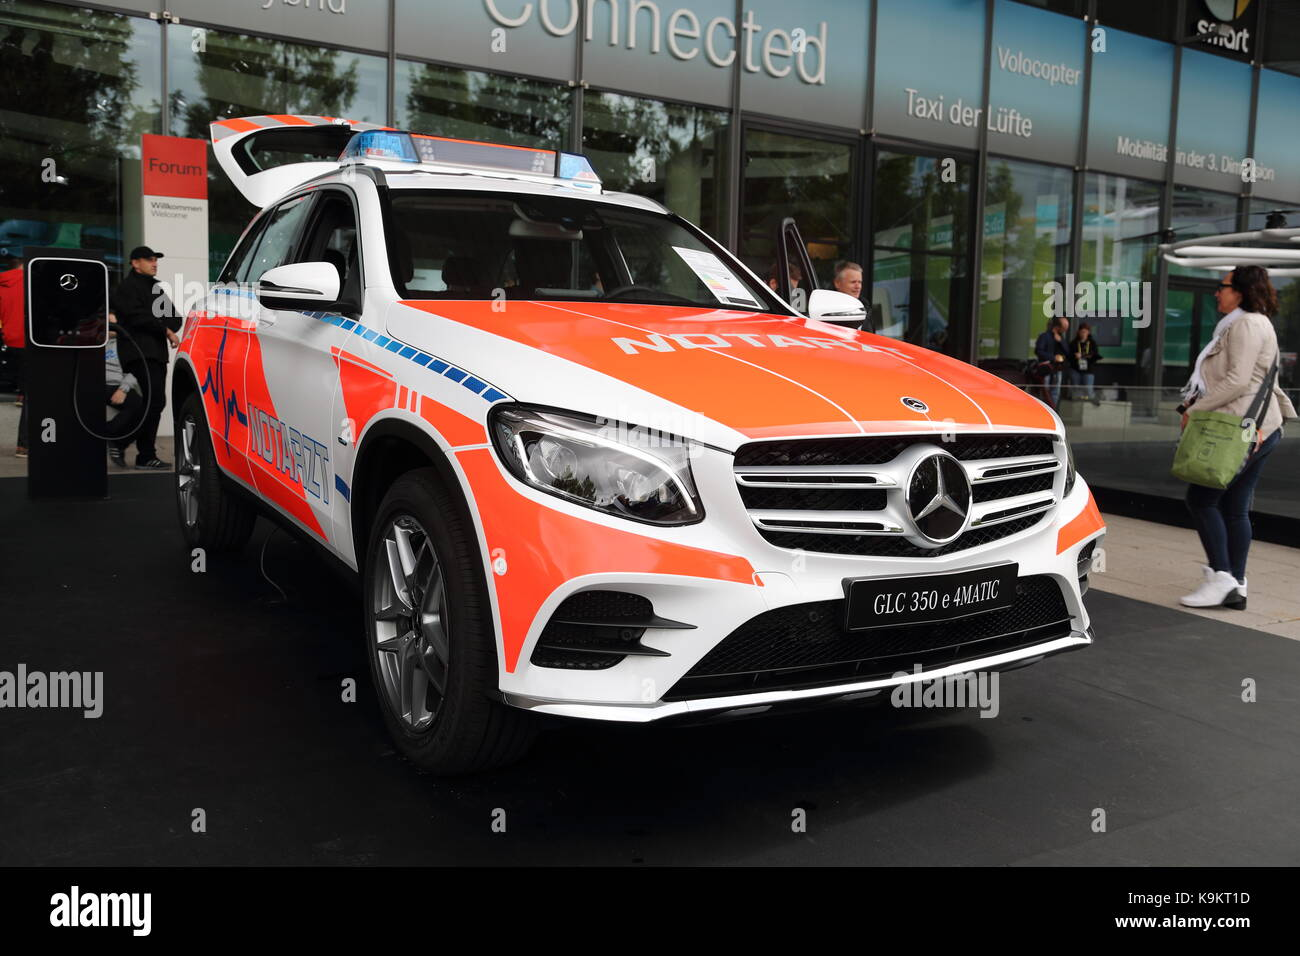 Mercedes Benz GLC 350 e hybrid in emergency services' livery at the Frankfurt Motor Show 2017 in Germany - Stock Image